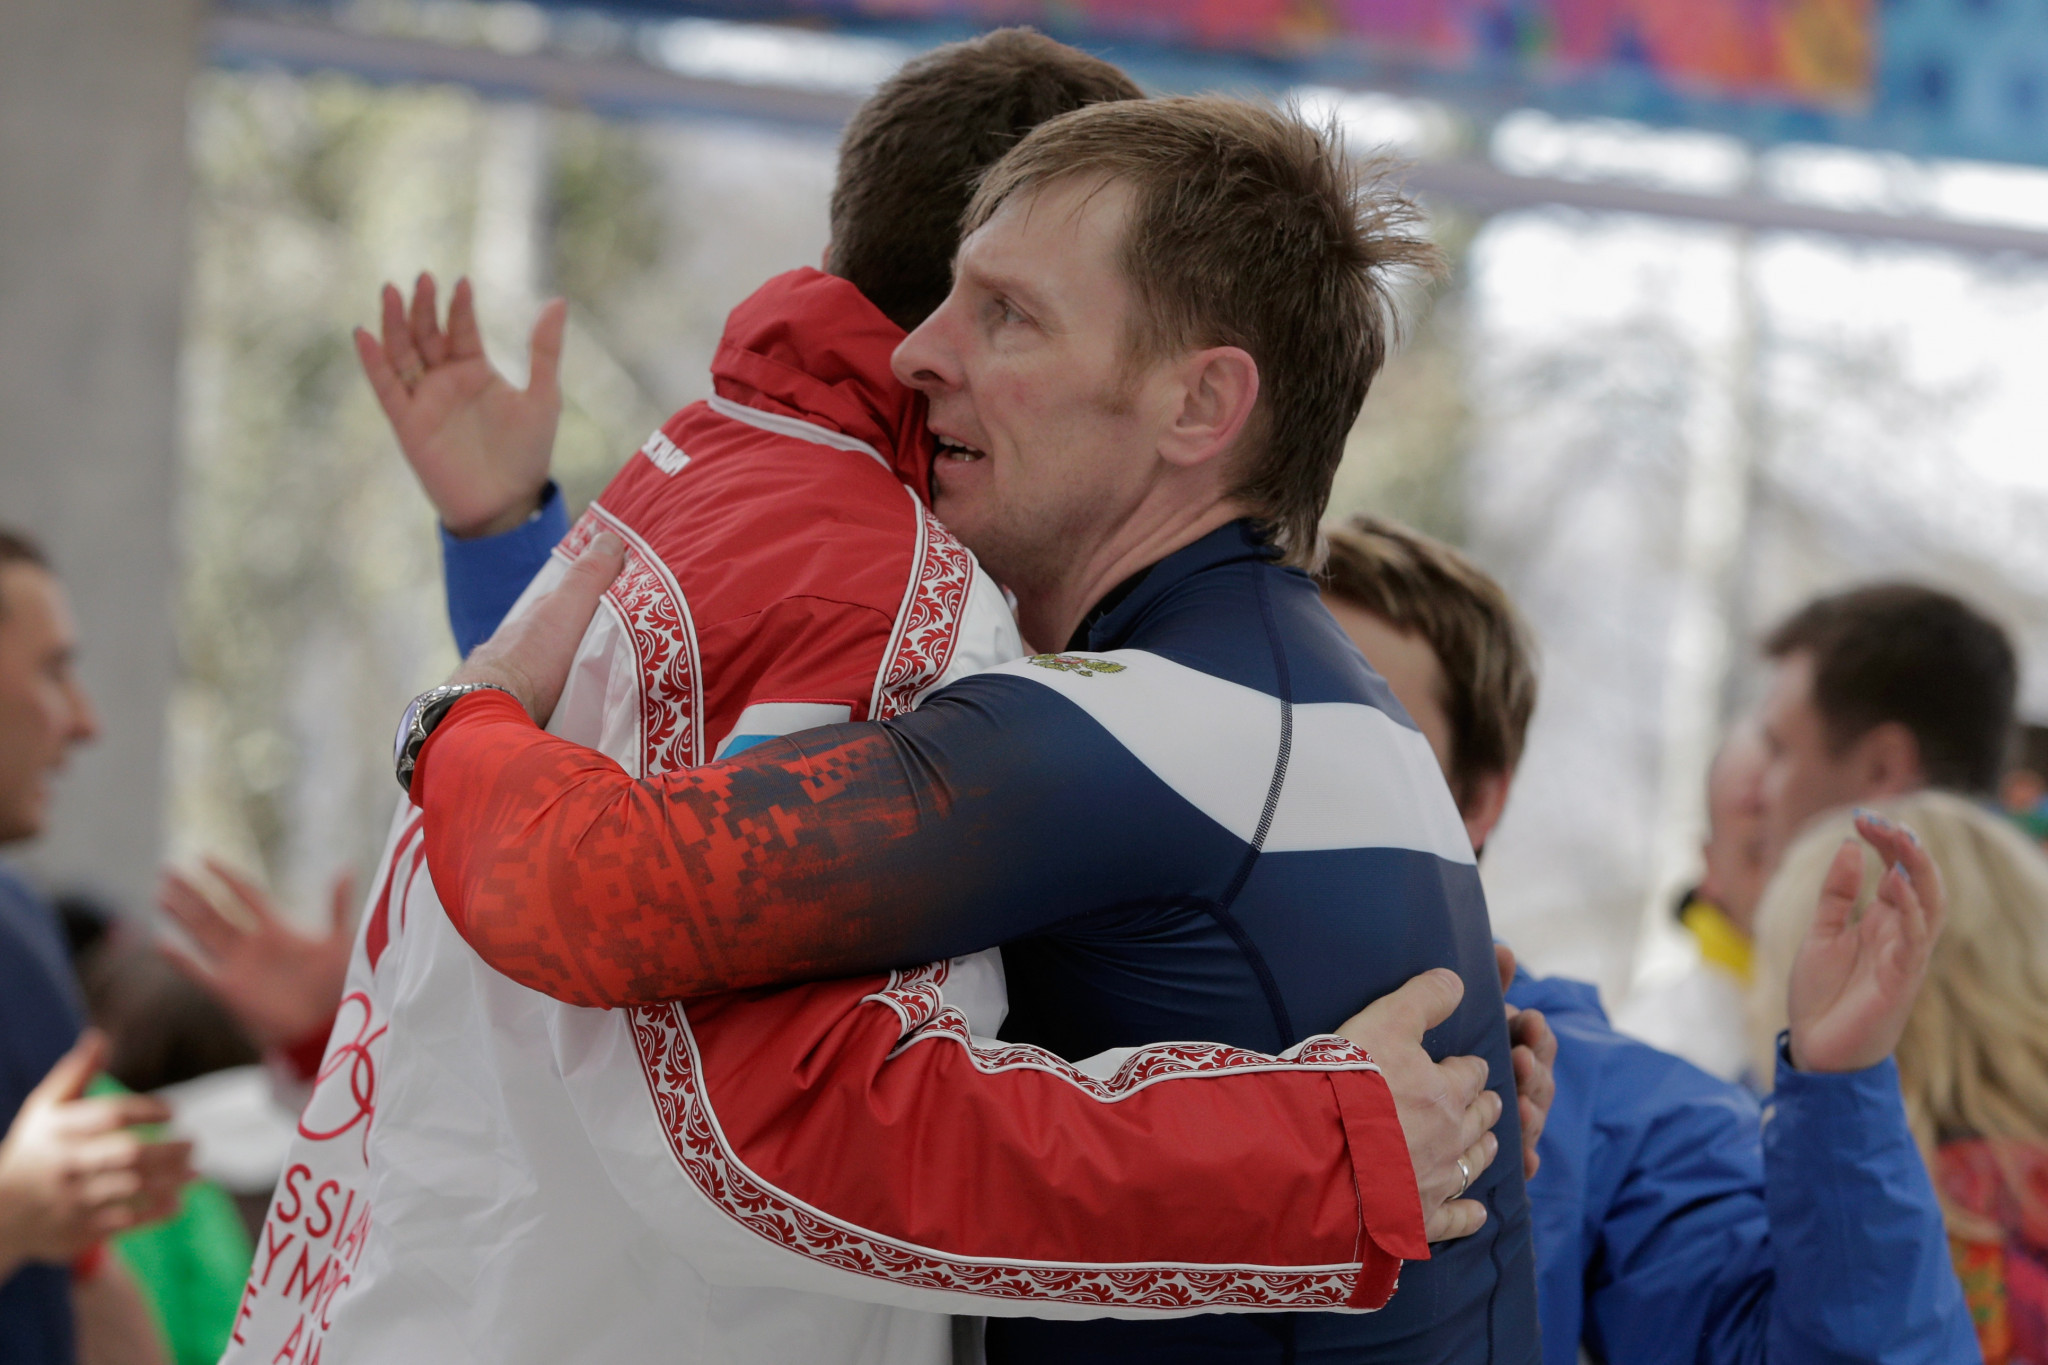 Alexander won two Olympic gold medals in the two-and four-man bobsleigh events at Sochi 2014, but has been asked to return them after it was found he was a involved in his country's state-sponsored doping programme ©Getty Images